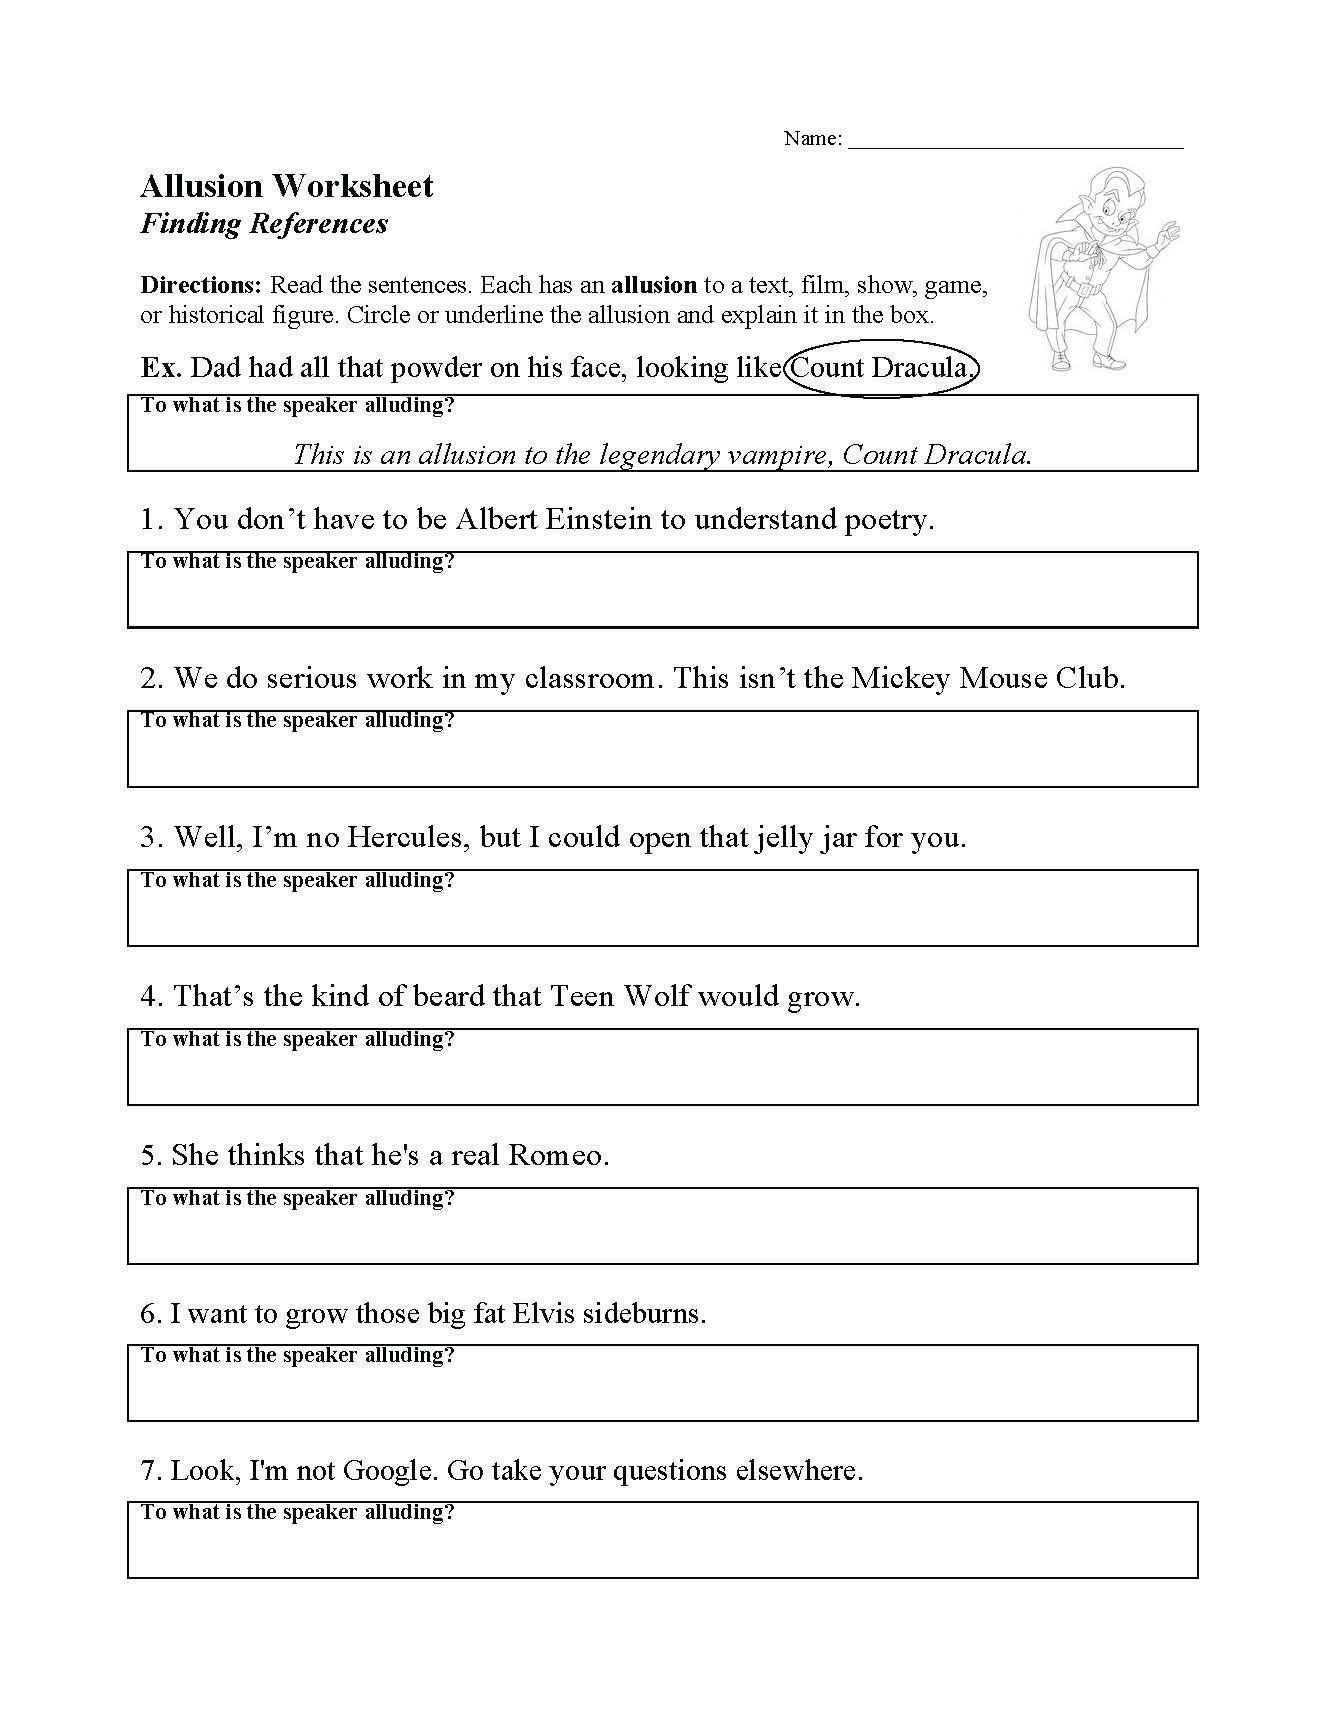 Allusion Worksheet High School Allusion Worksheet for Middle School Literary Circles